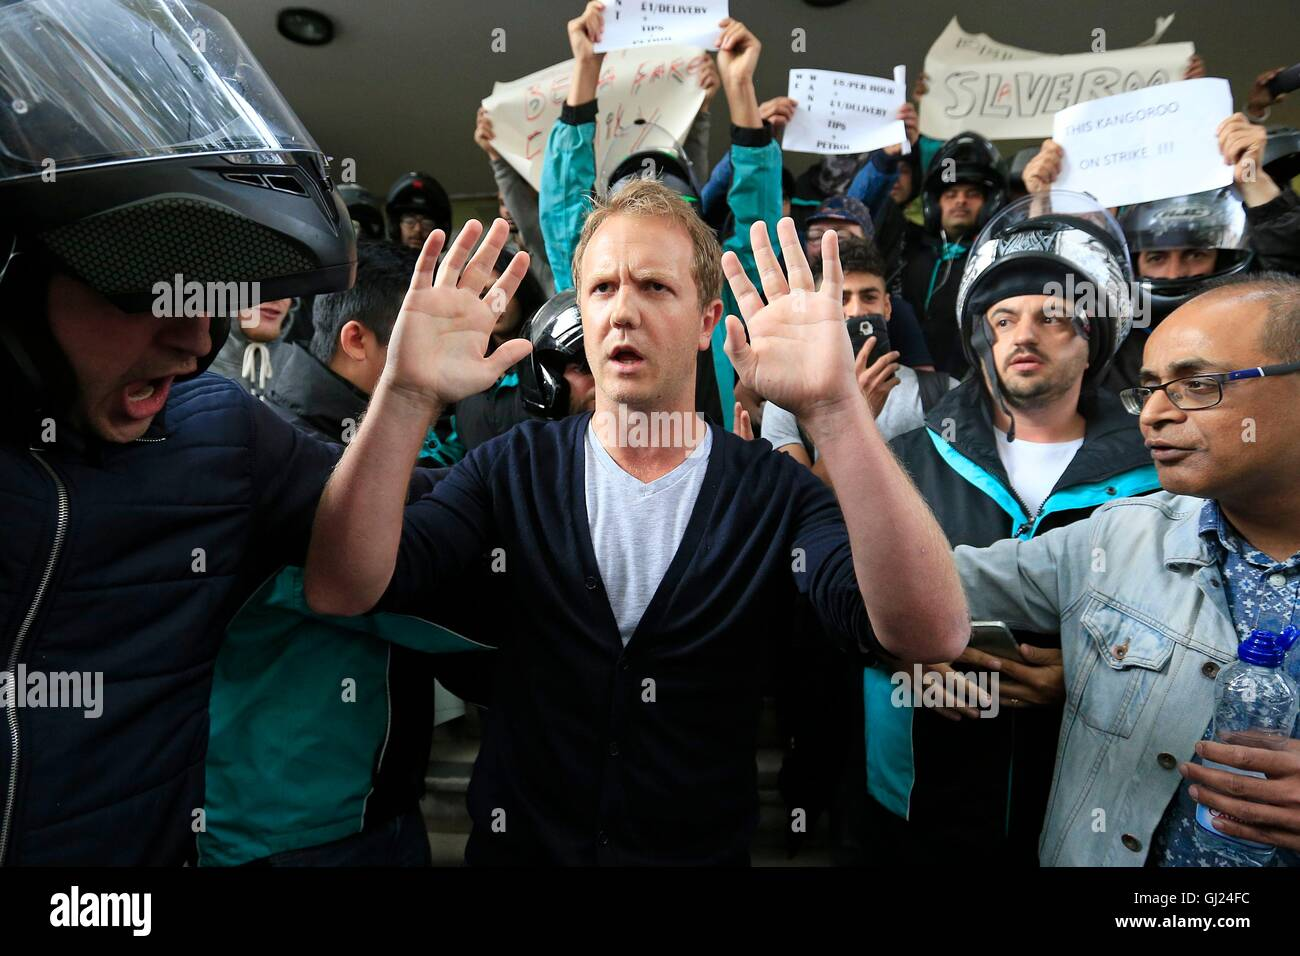 Deliveroo riders hold a protest outside the company HQ in Torrington Place, London. - Stock Image